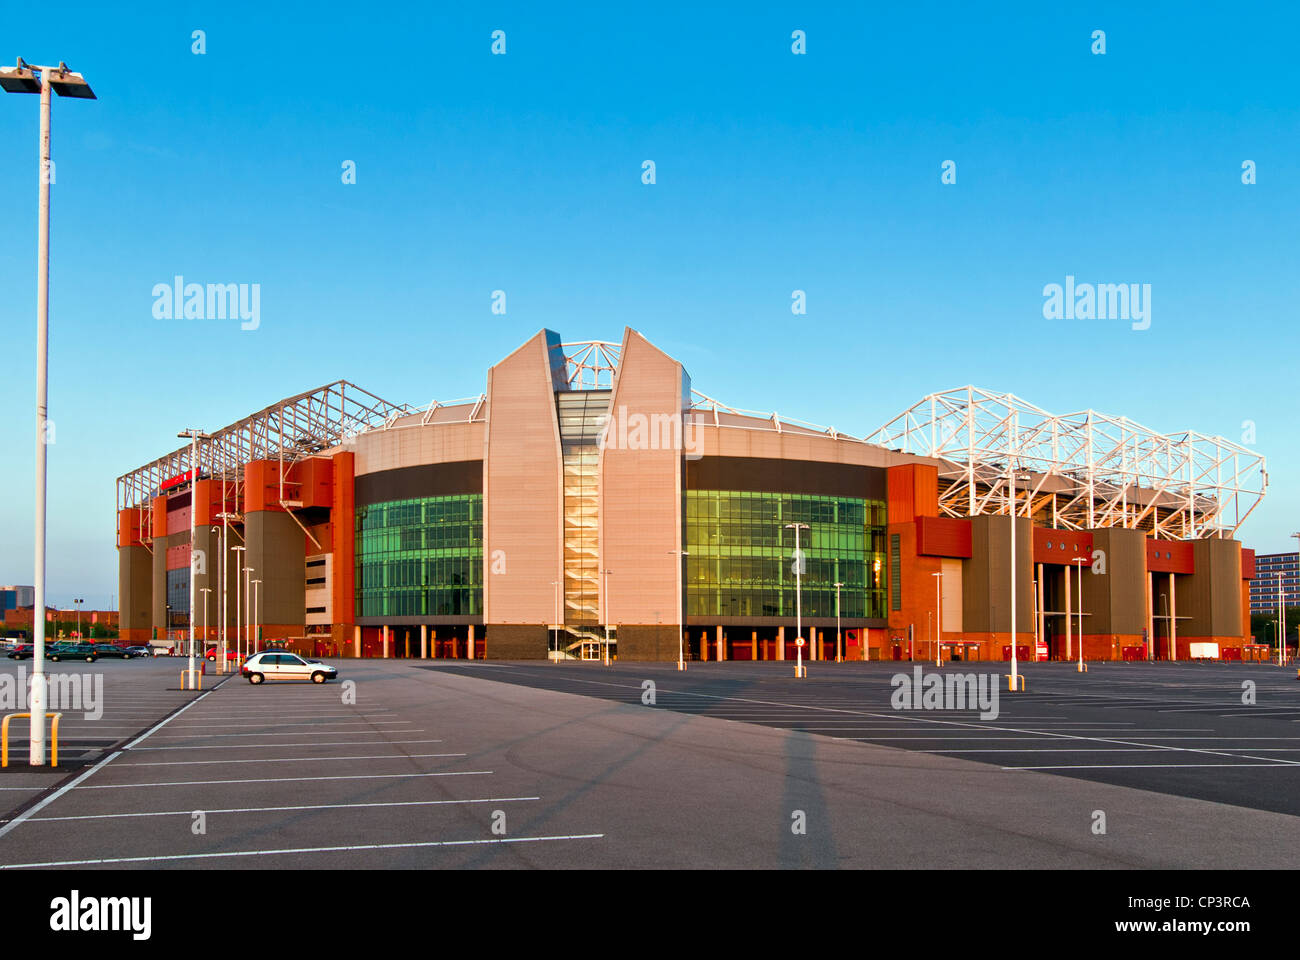 Manchester United football ground 'Old Trafford', Manchester, England, UK - Stock Image